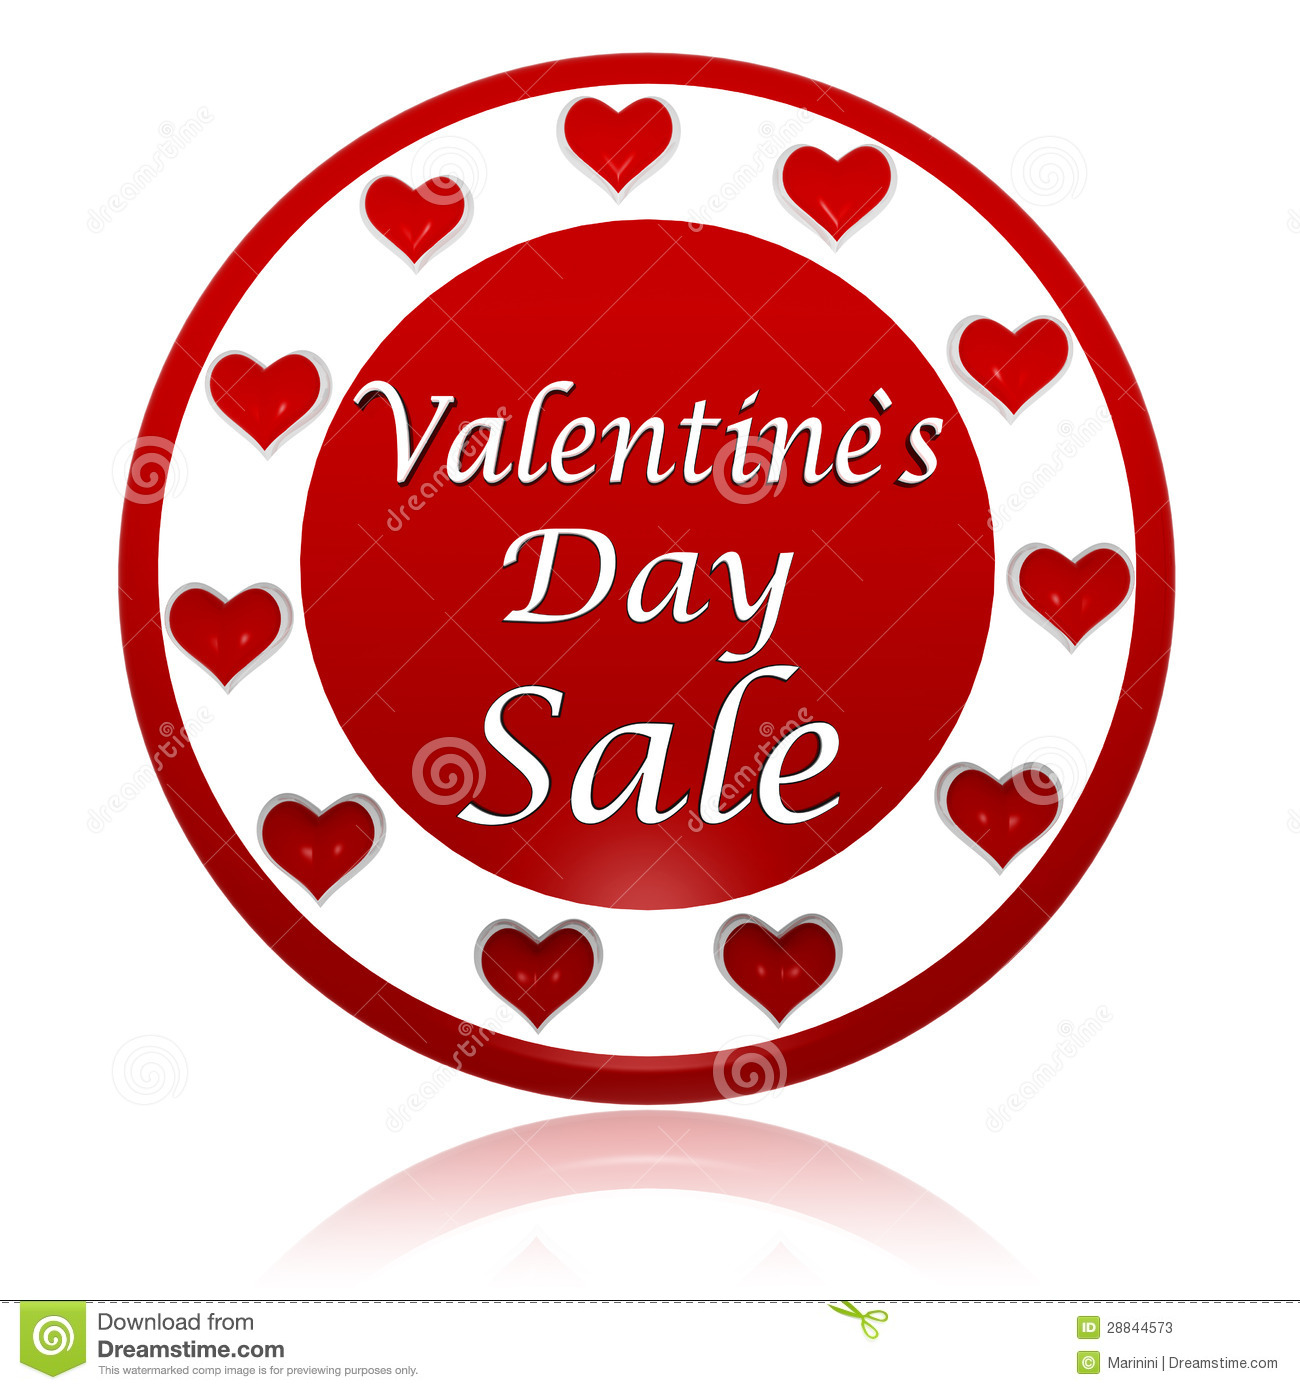 Schön Valentines Day Sale Red Circle Banner With Hearts Symbols